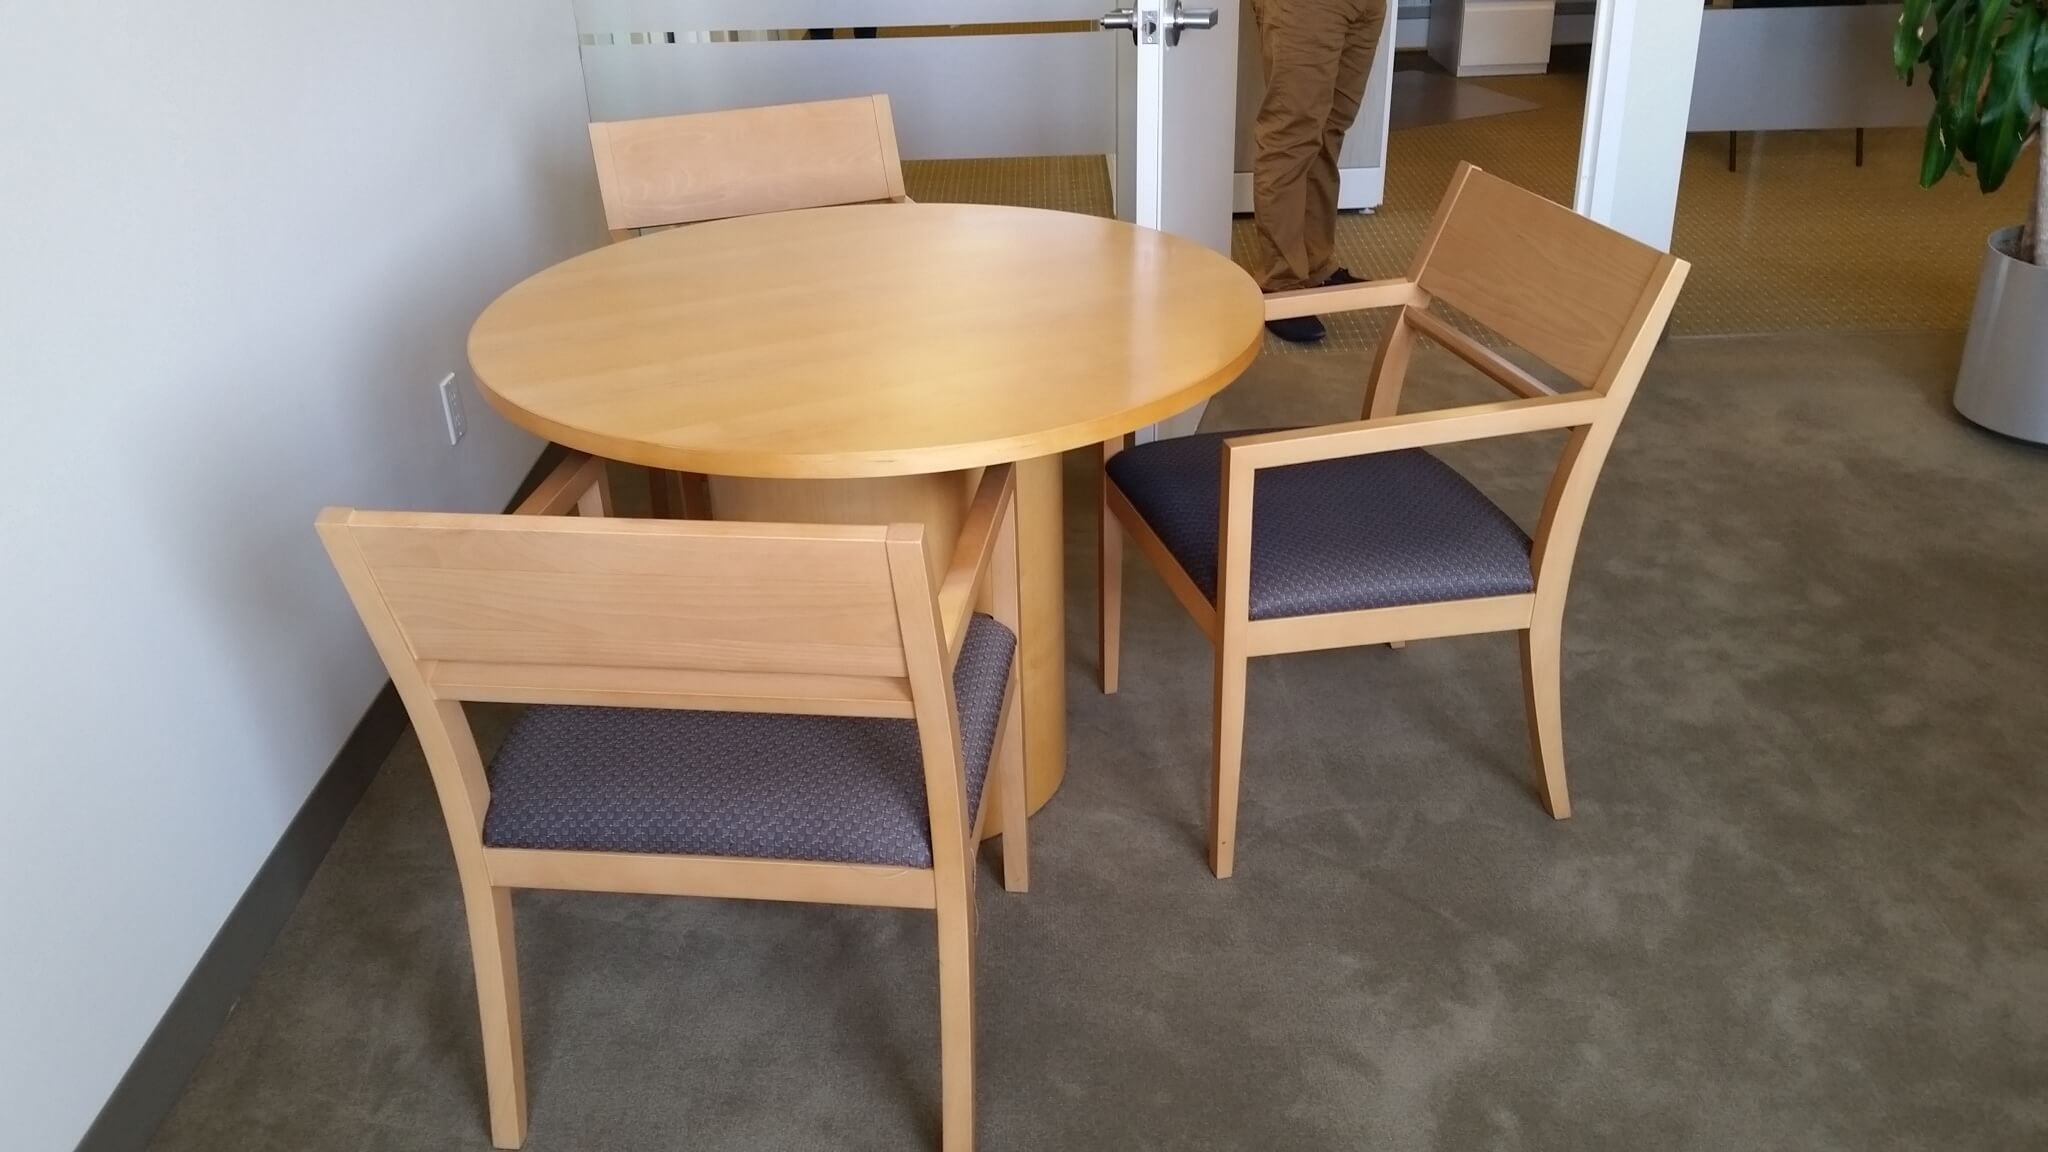 Teknion Used Wood Guest Chairs Second Hand fice Chairs Used fi